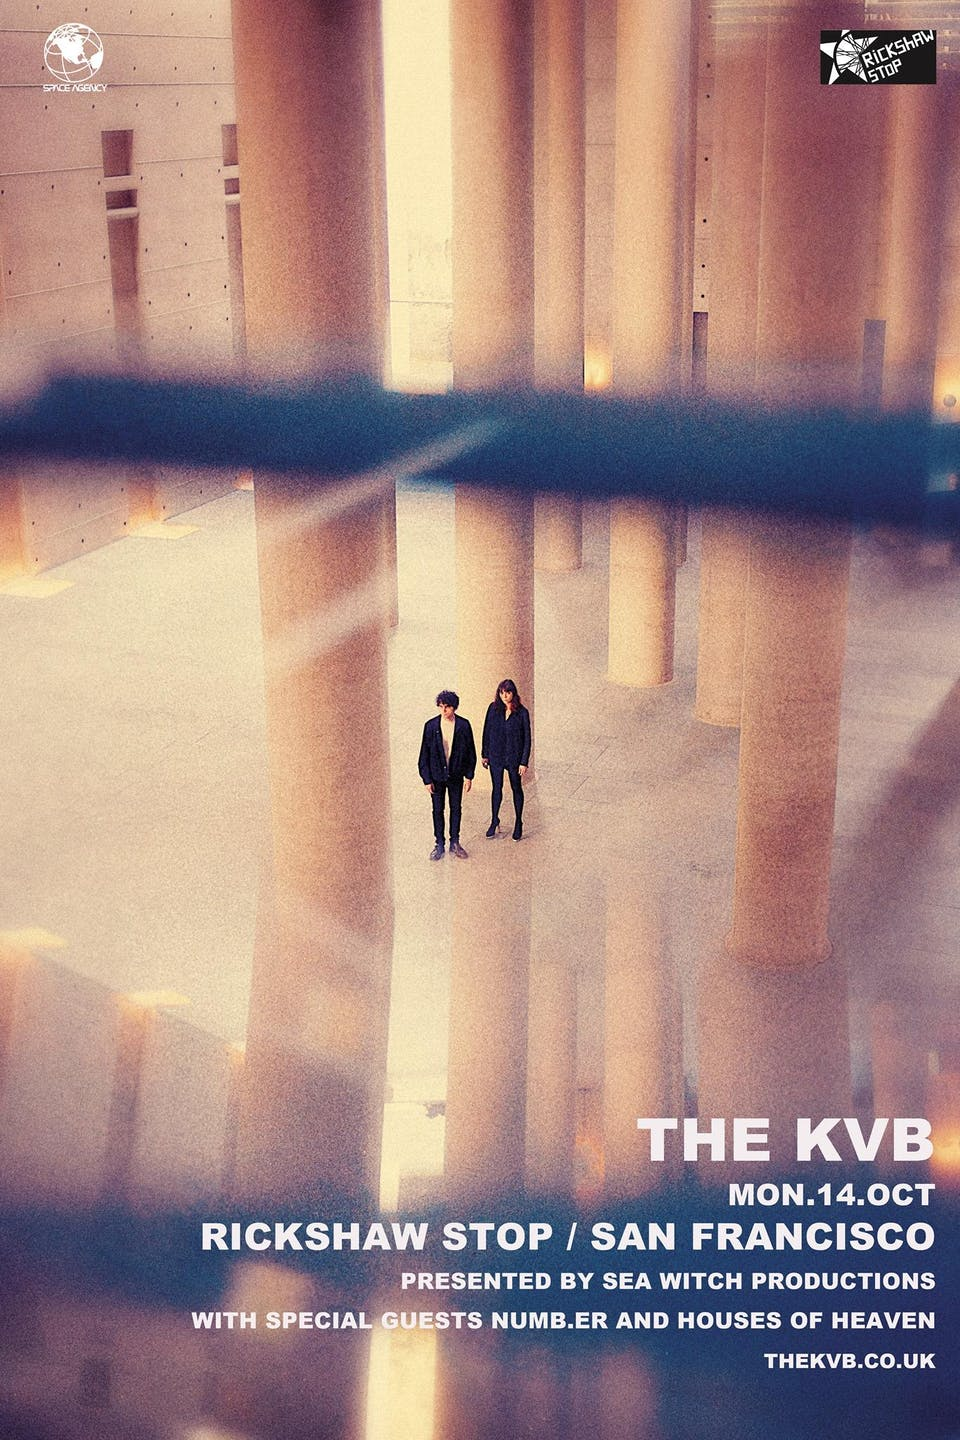 The KVB plus Numb.er and Houses of Heaven